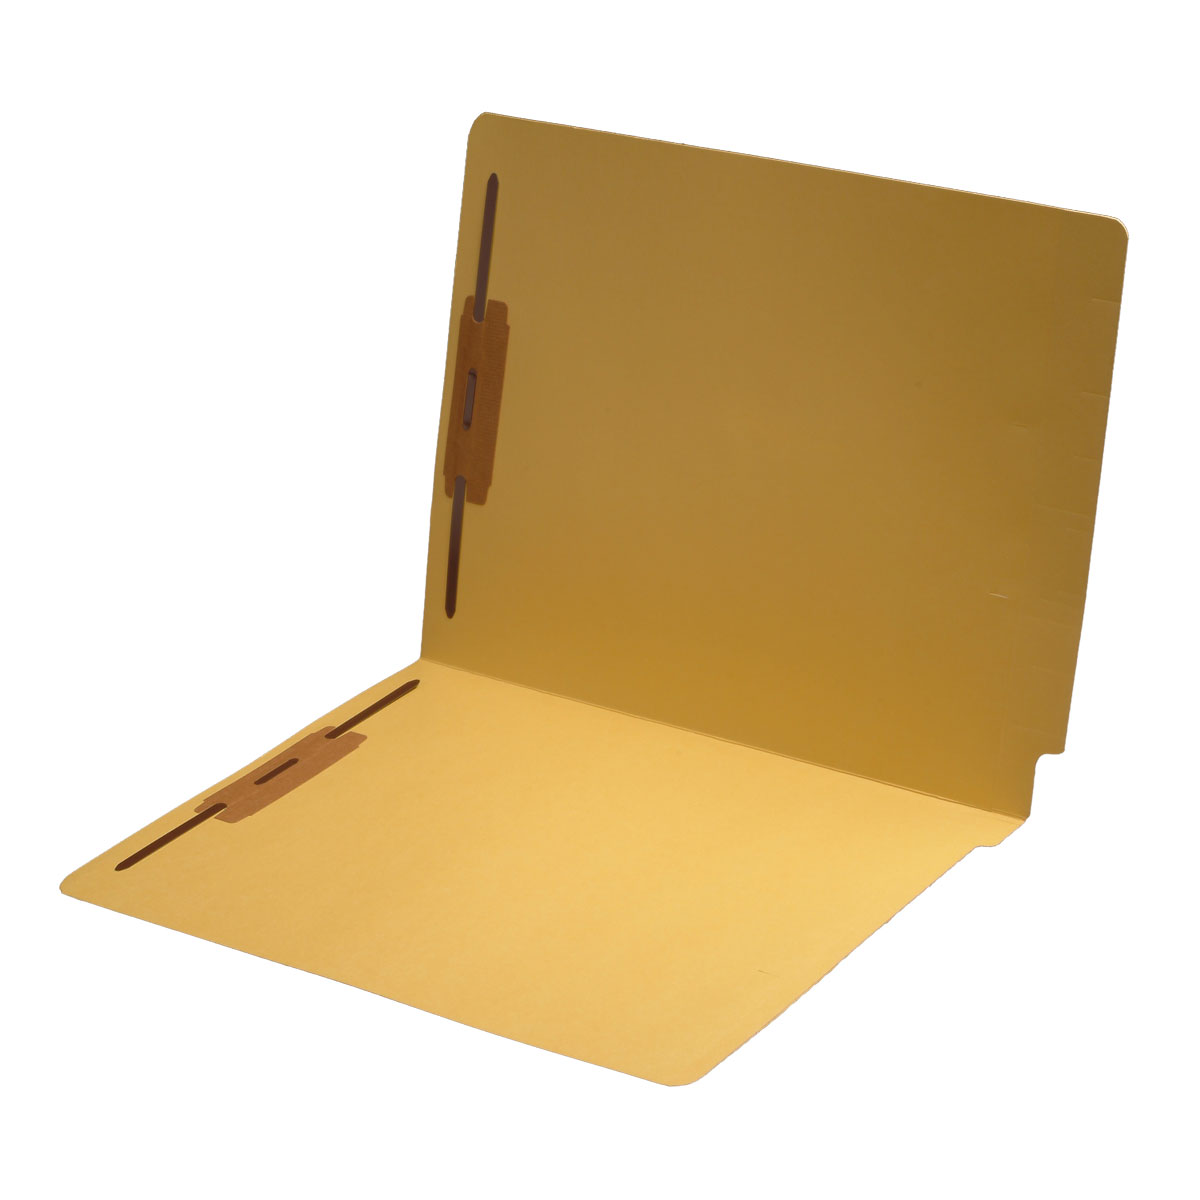 S-1502 - 11 pt Color Folders, Full Cut 2-Ply End Tab, Letter Size, Fastener Pos #1 & #3 (Box of 50)